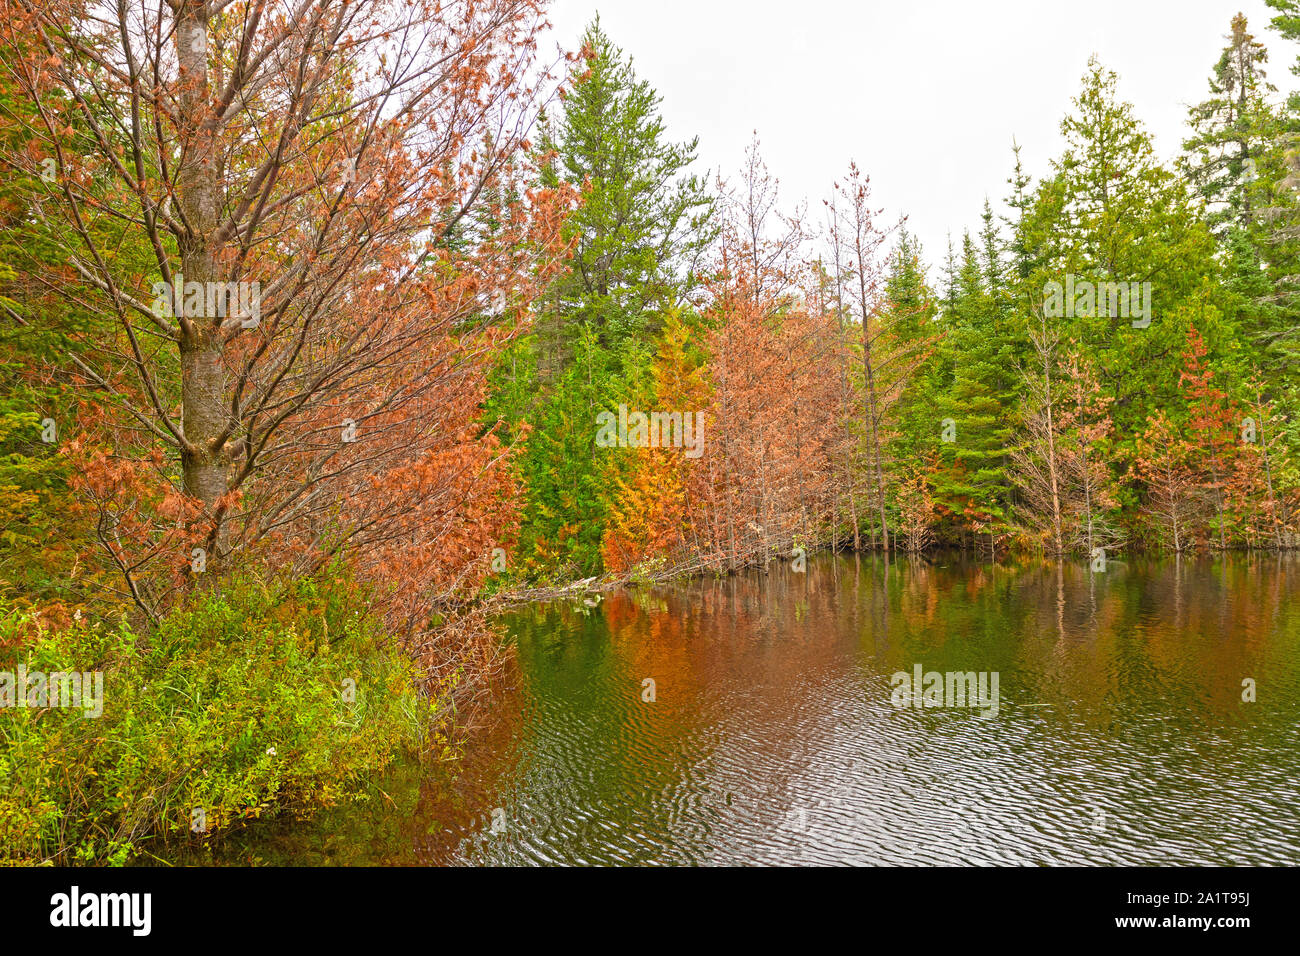 Boundary Dam Stock Photos & Boundary Dam Stock Images - Alamy